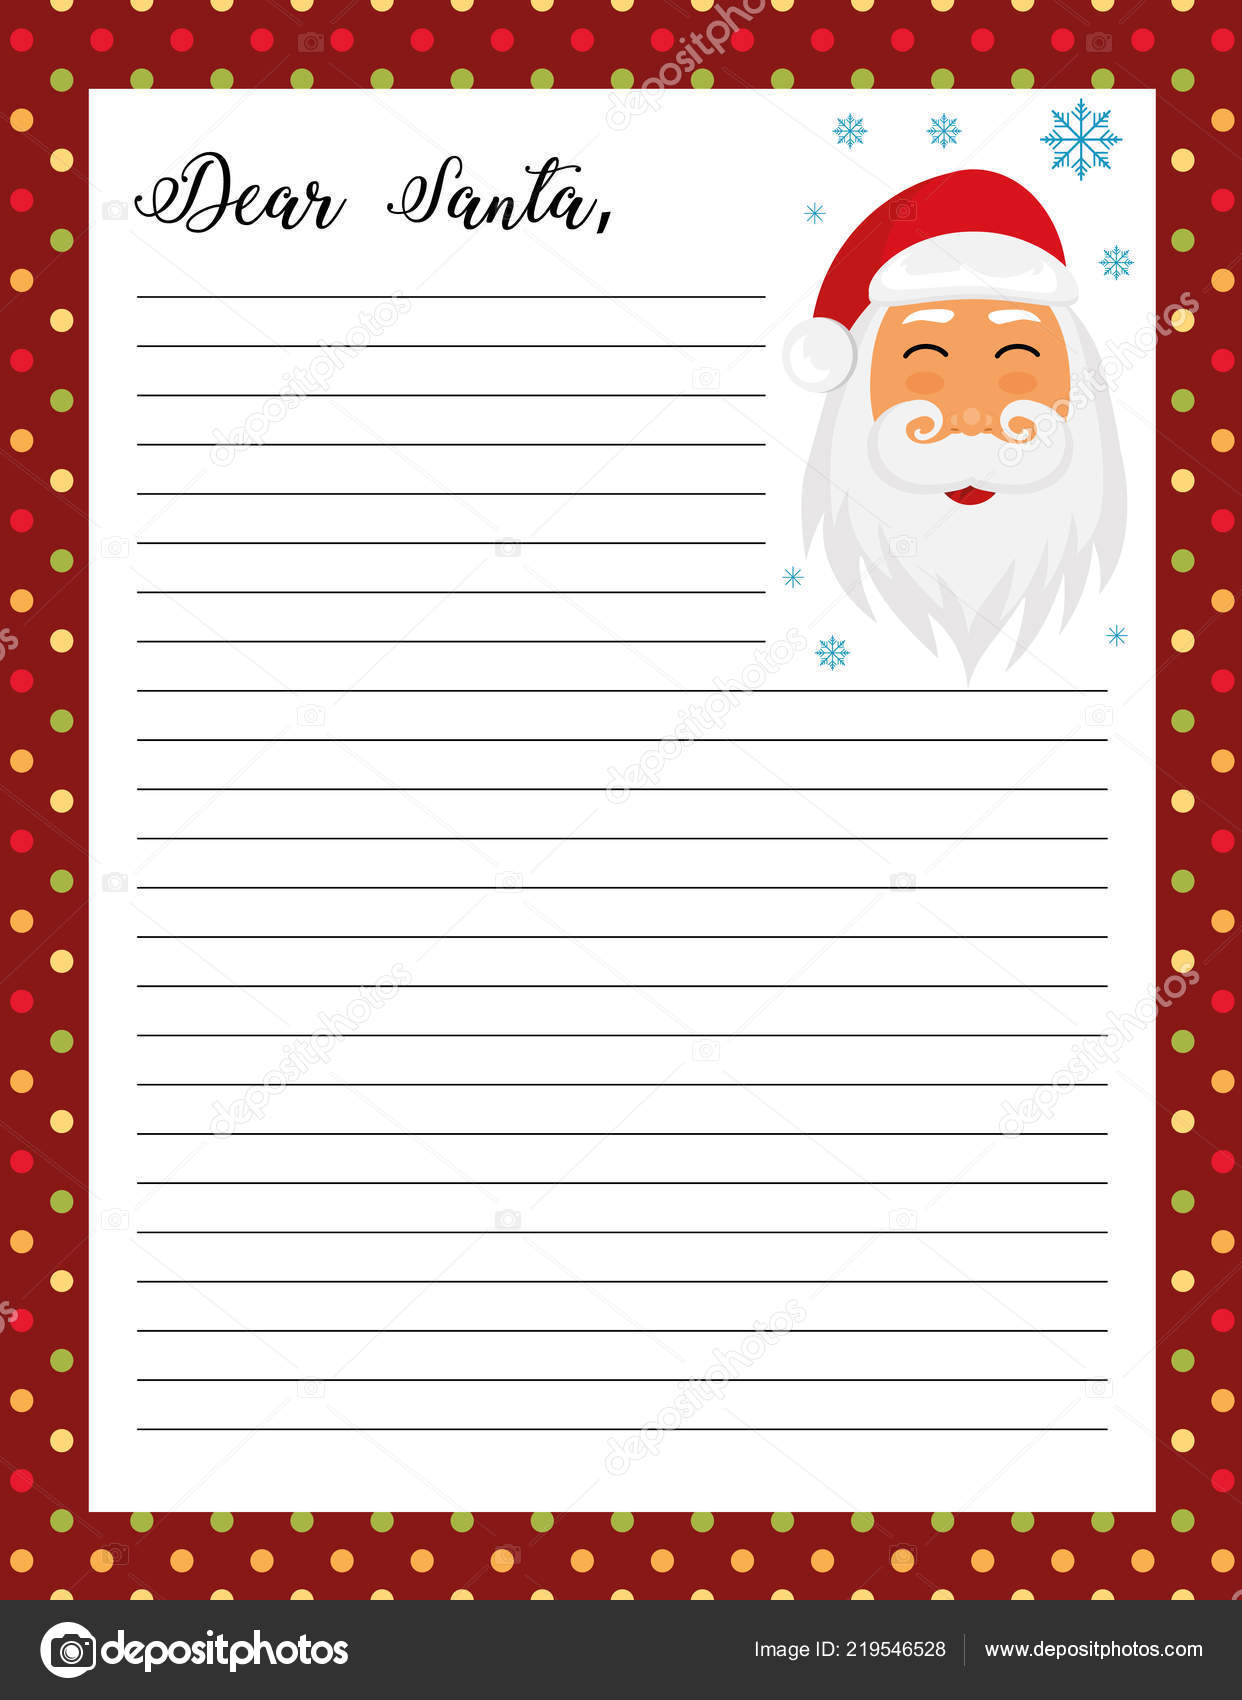 Printable Pictures Of Santa Claus That Are Simplicity